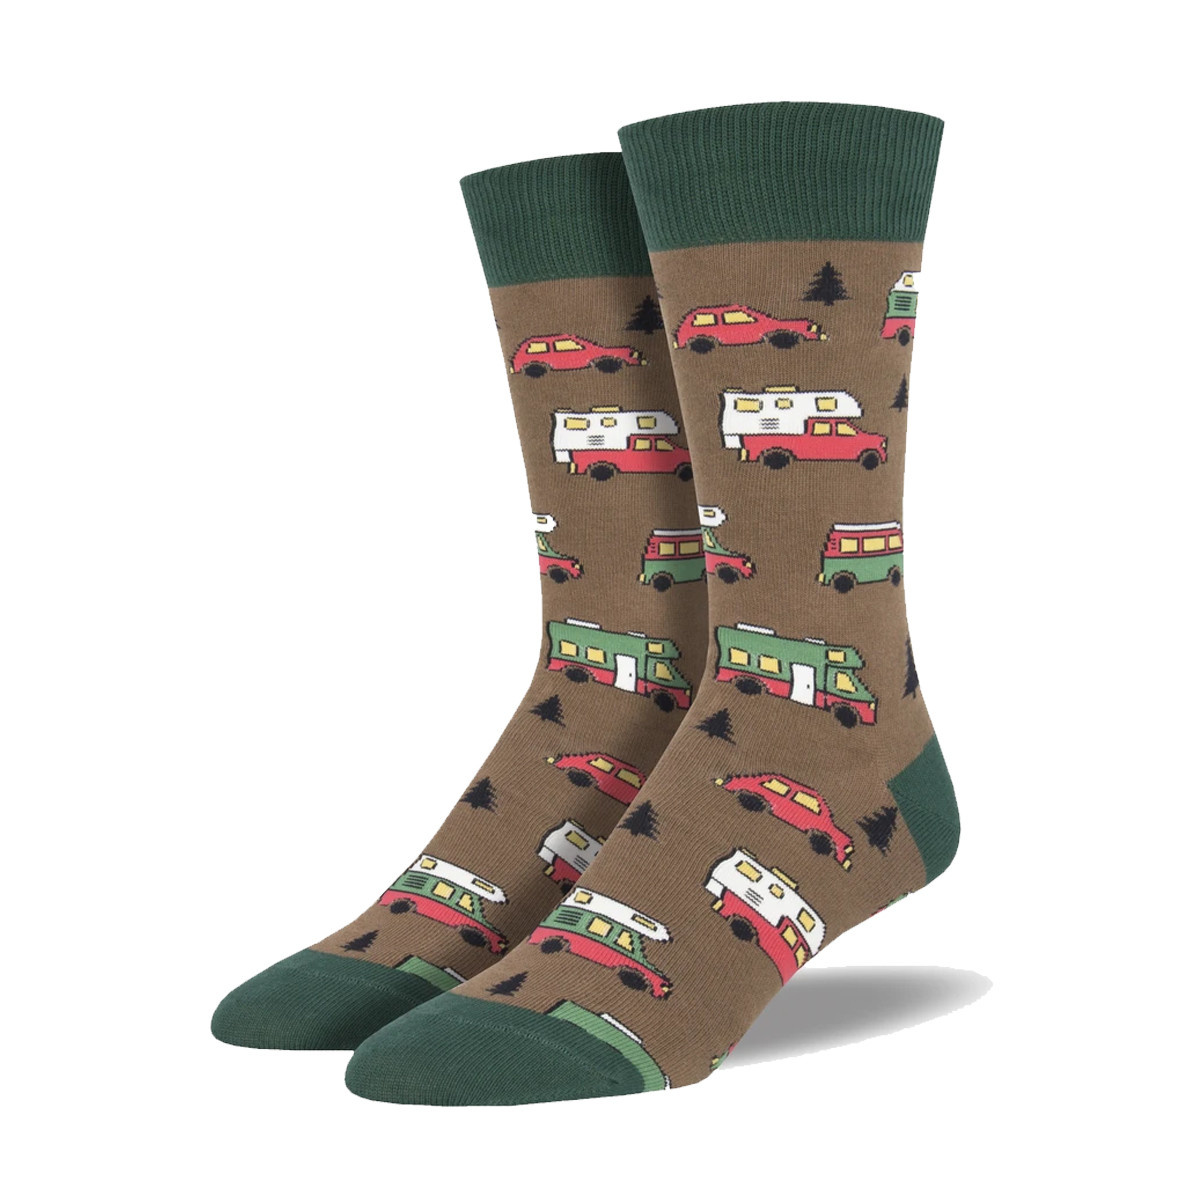 Socksmith Socksmith Men's Are We There Yet? Brown M 7 - 12.5